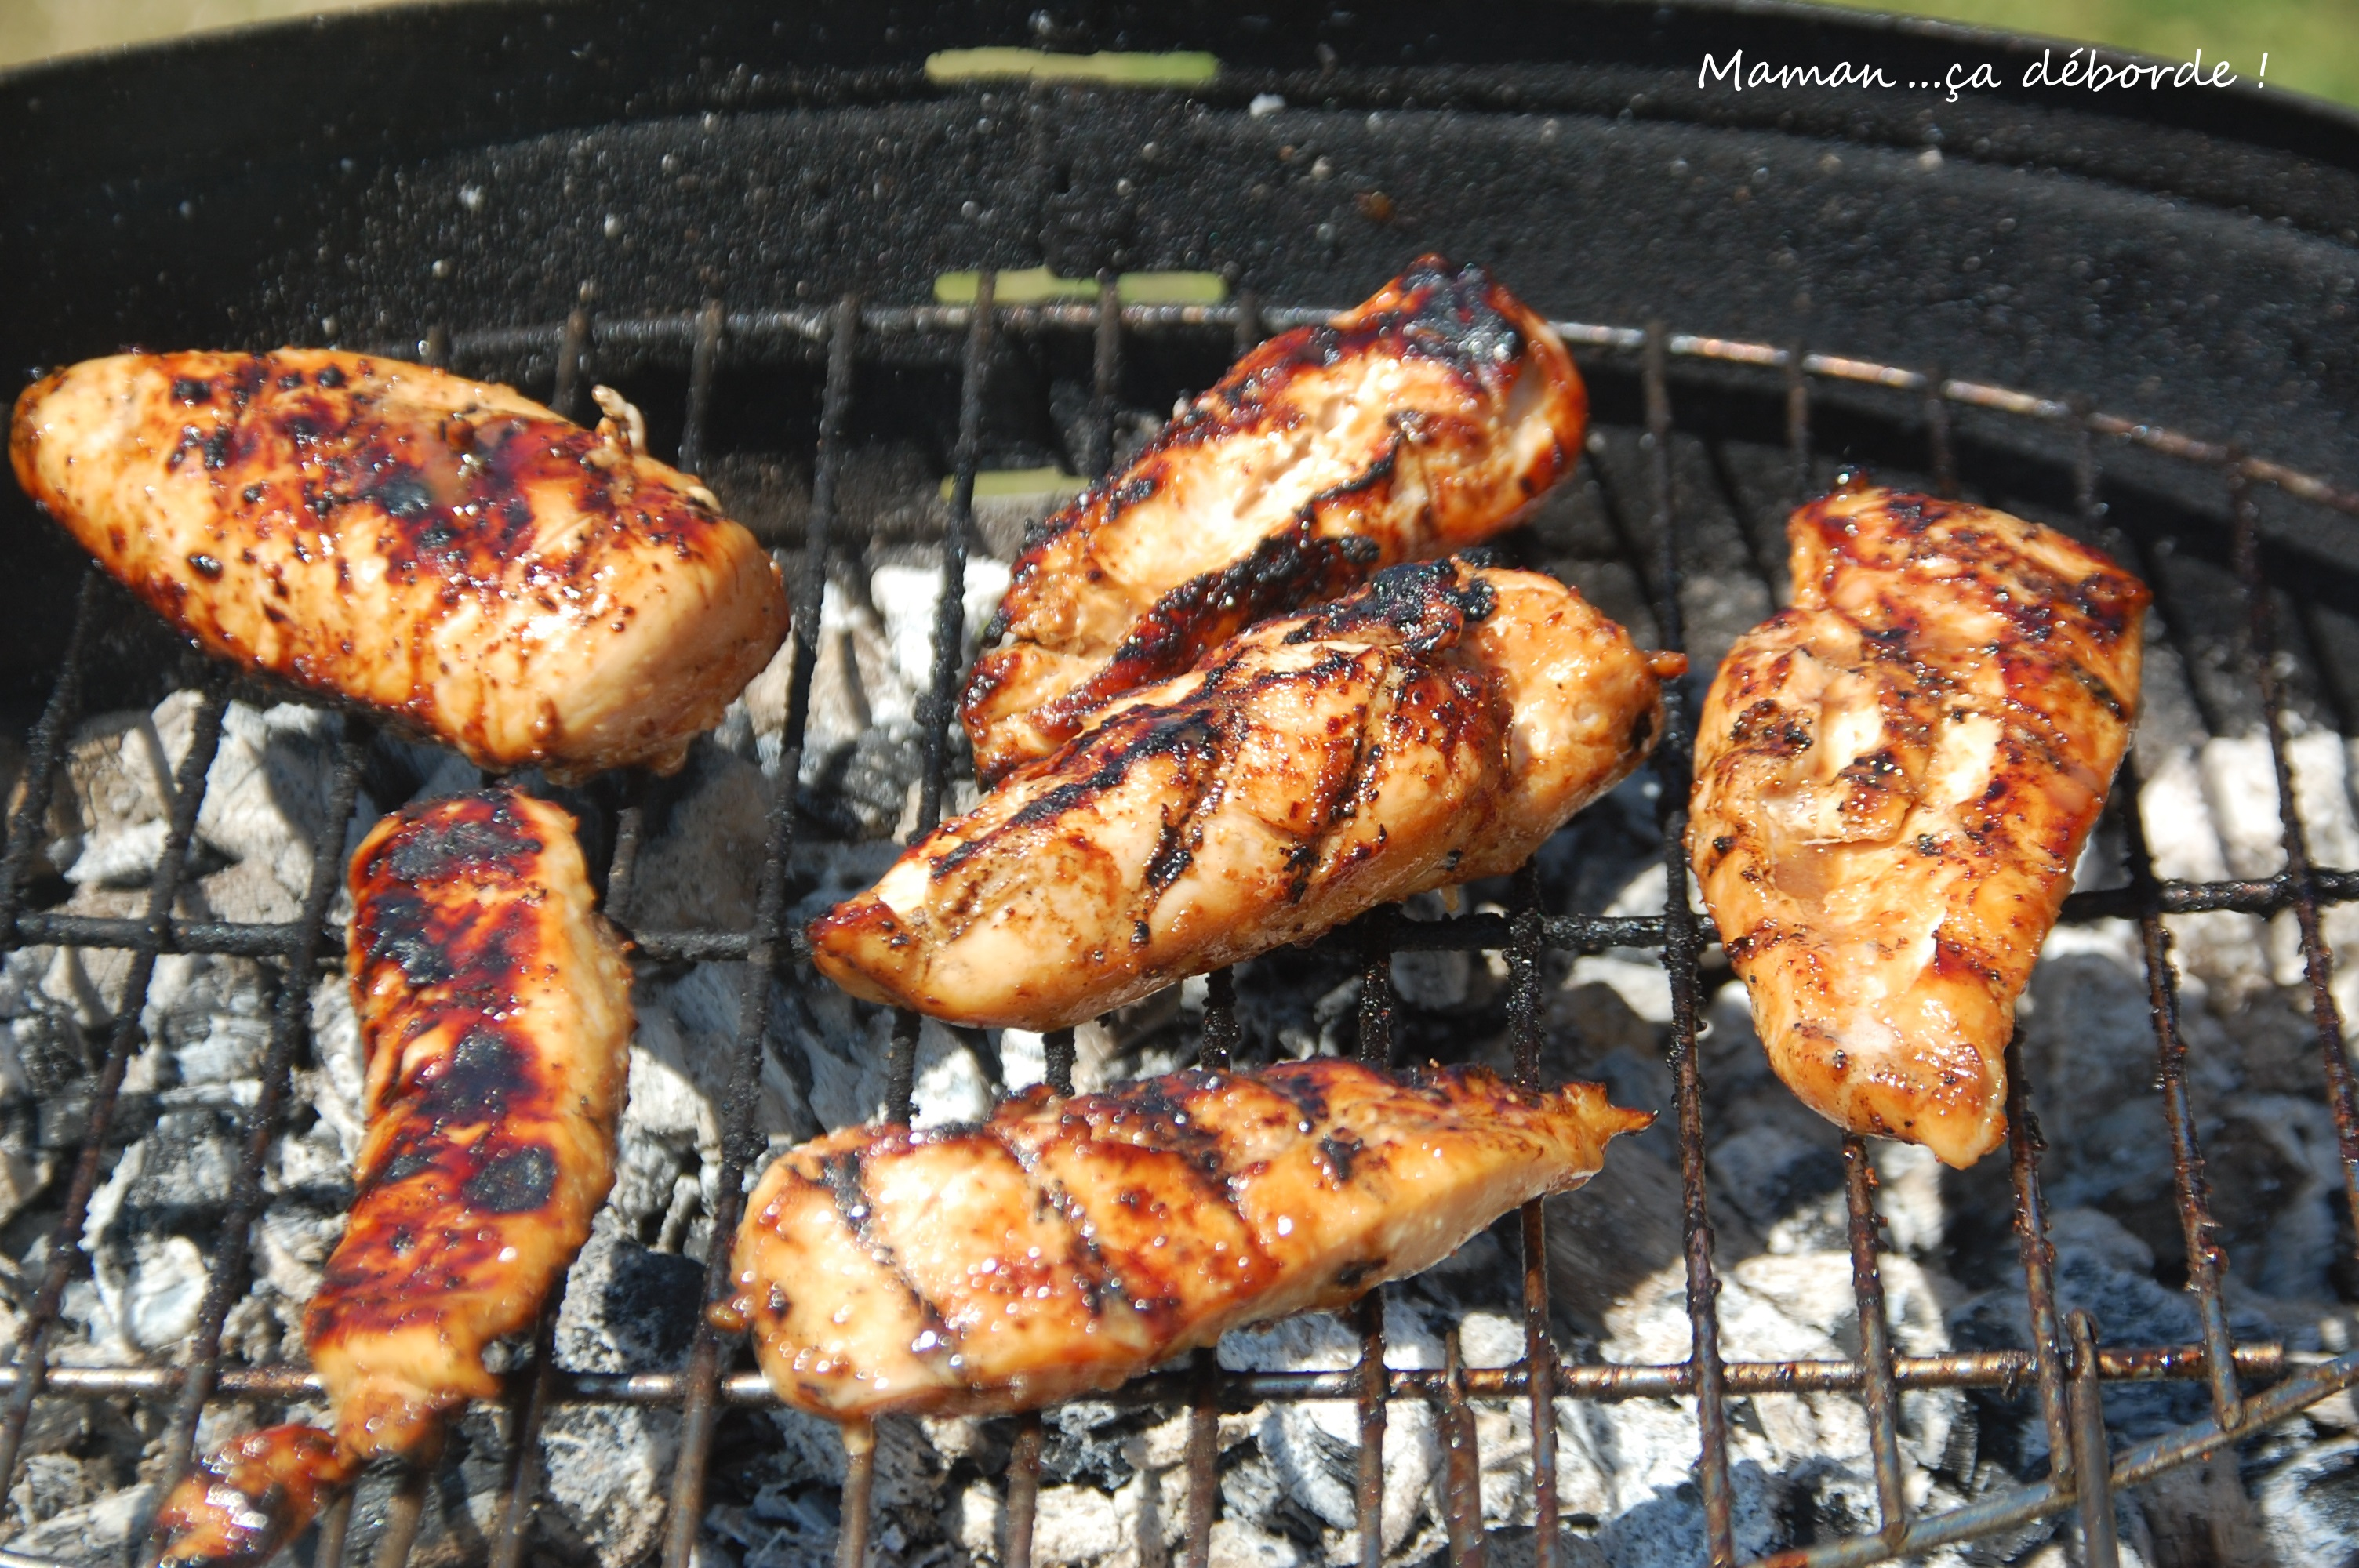 Charming Recette Barbecue Marinade Pour Poulet #4: Marinade Pour Poulet Au Barbecue